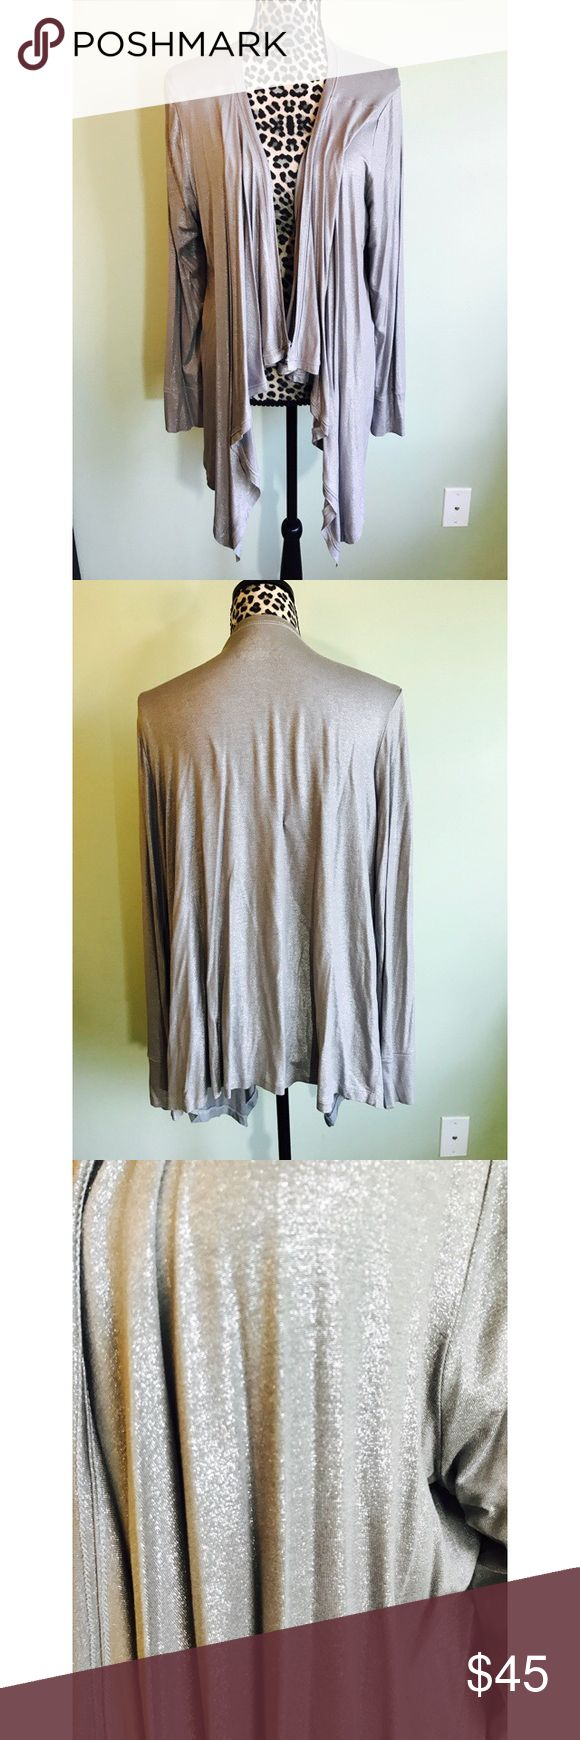 💕Shimmering silver cardigan NWOT NWOT Shimmering silver cardigan. Size 18/20. 95% rayon 5% spandex Lane Bryant Sweaters Cardigans